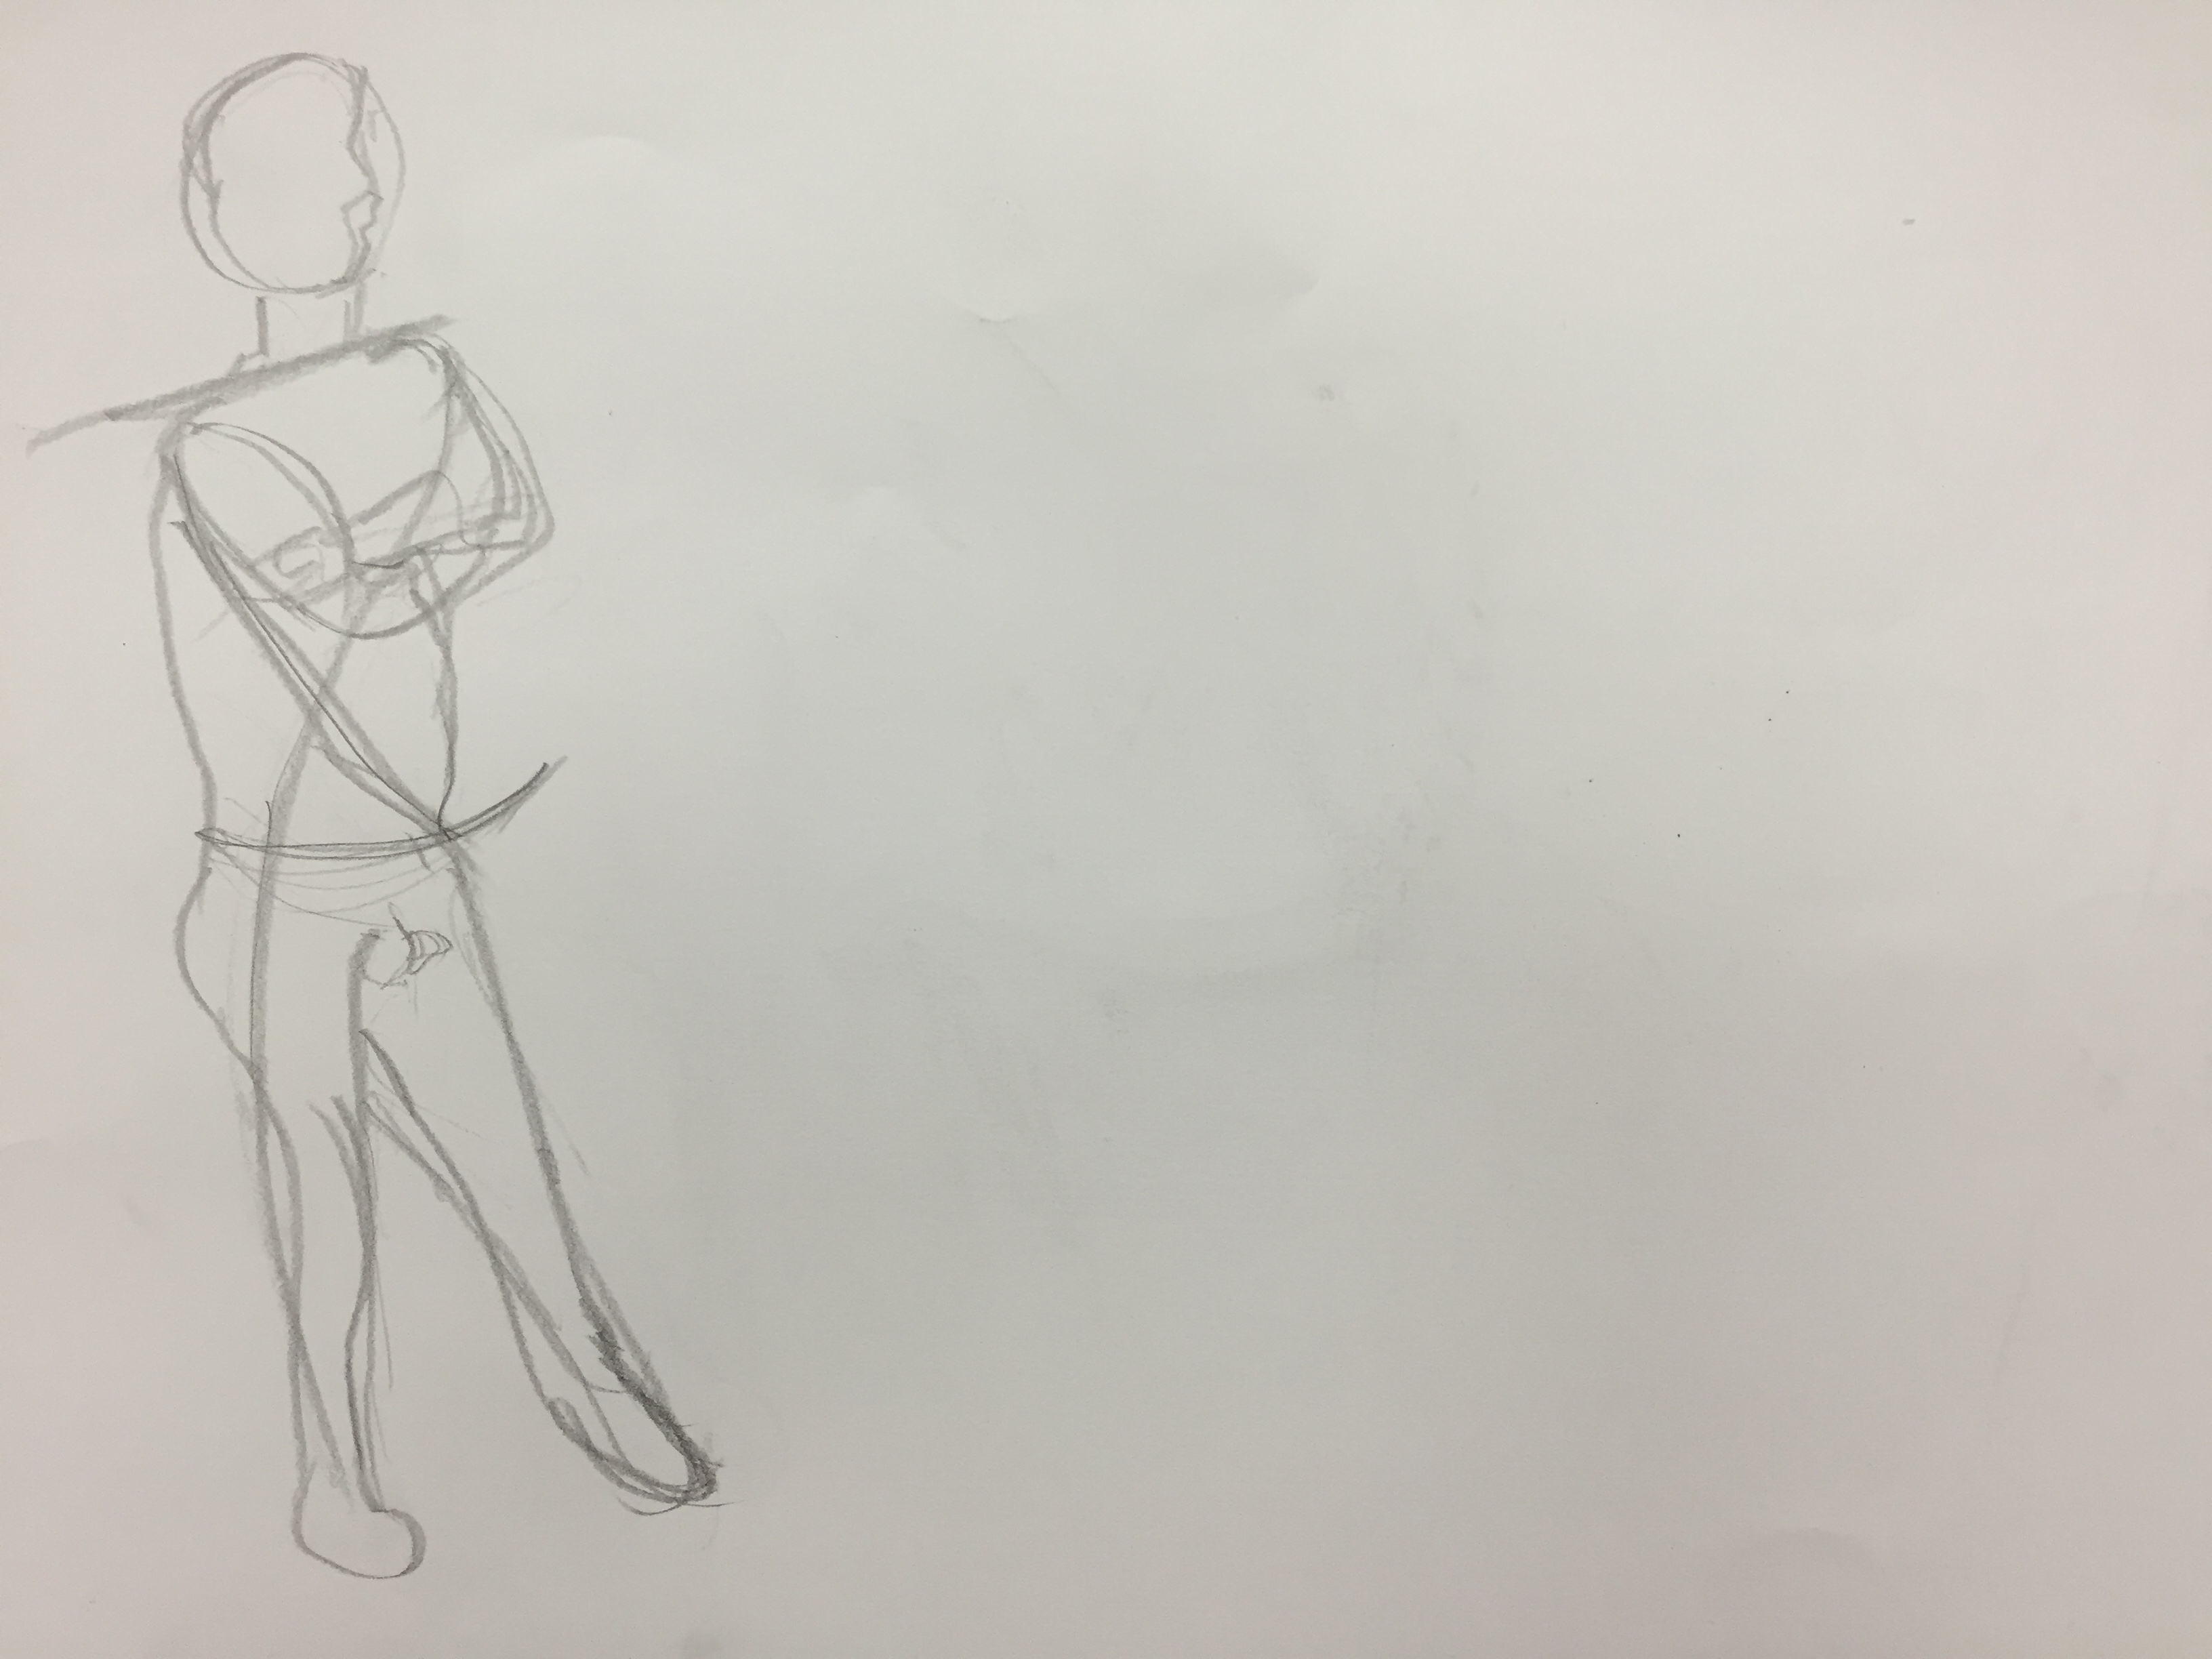 Week 5 – Figure Drawing 1 (Line of Action) – Lizhen